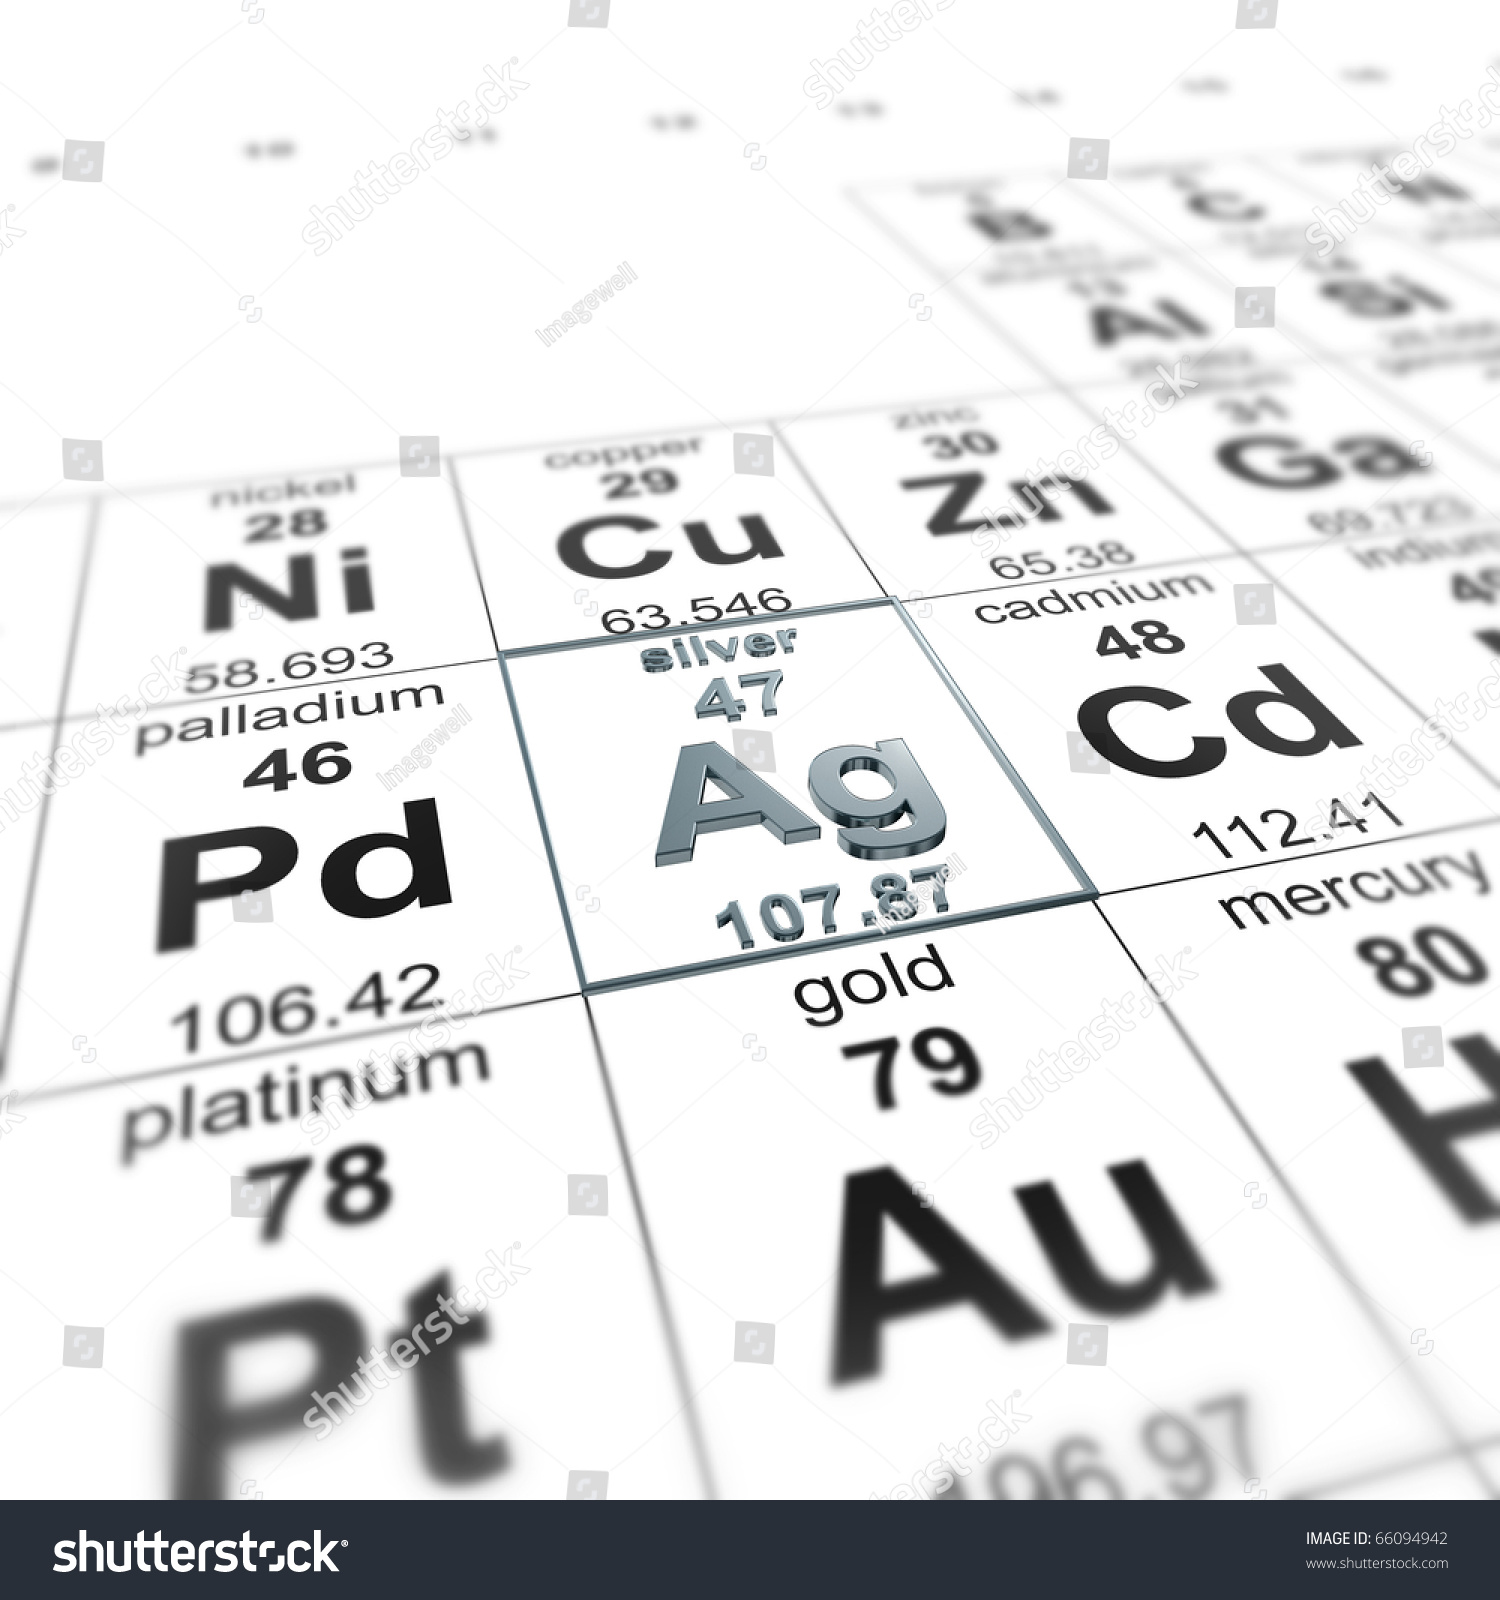 Periodic table of elements silver images periodic table images where is silver on the periodic table choice image periodic periodic table elements focused on silver gamestrikefo Choice Image